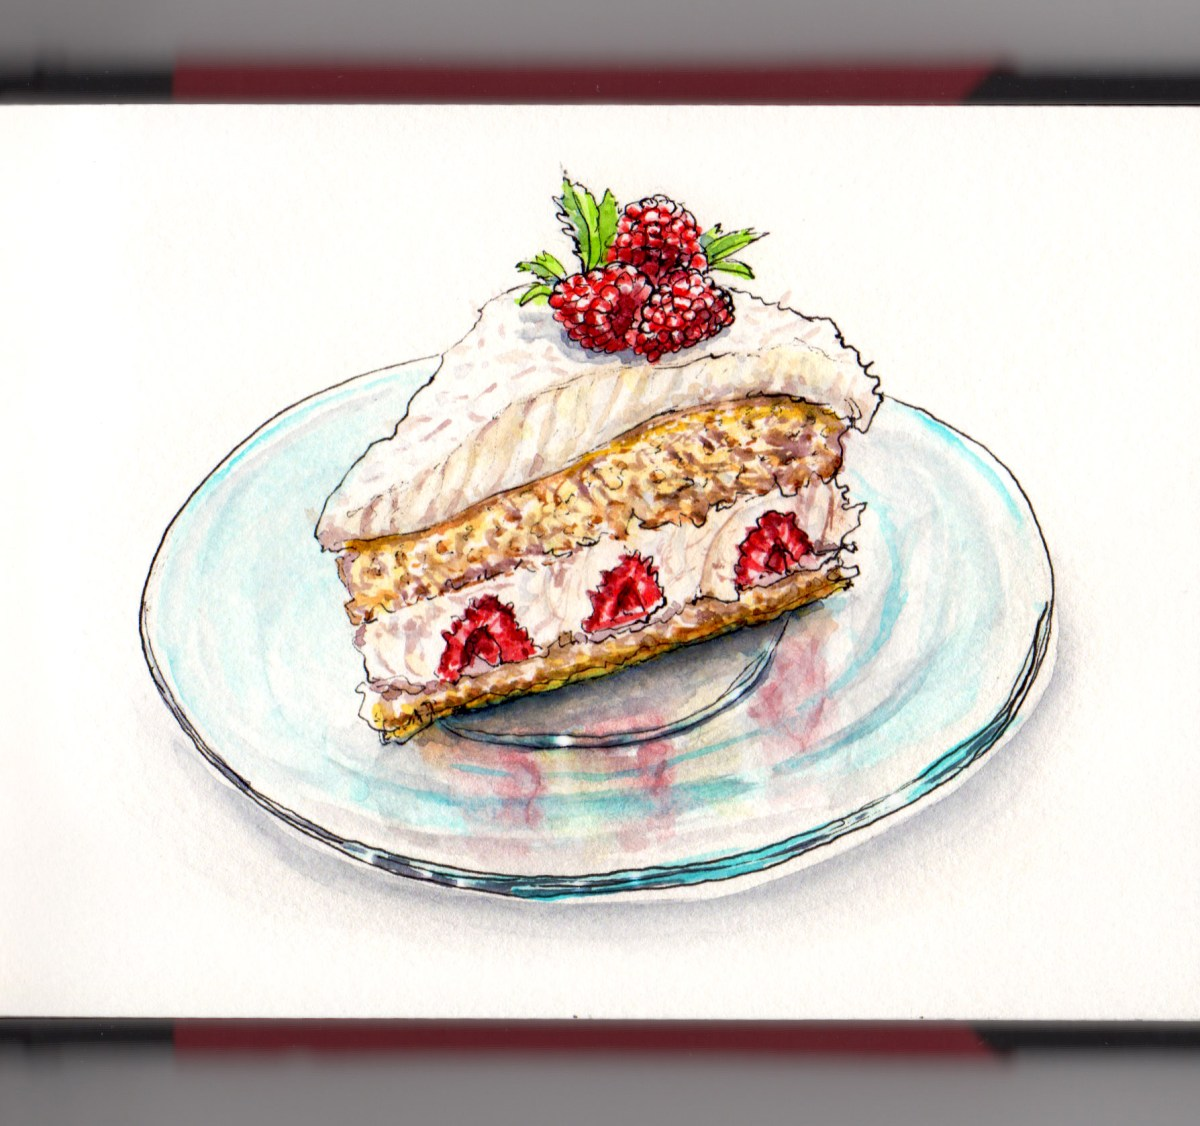 Day 12 - #WorldWatercolorGroup Christmas Cake raspberries and white chocolate gâteau framboise-coco-chocolat blanc - #doodlewash